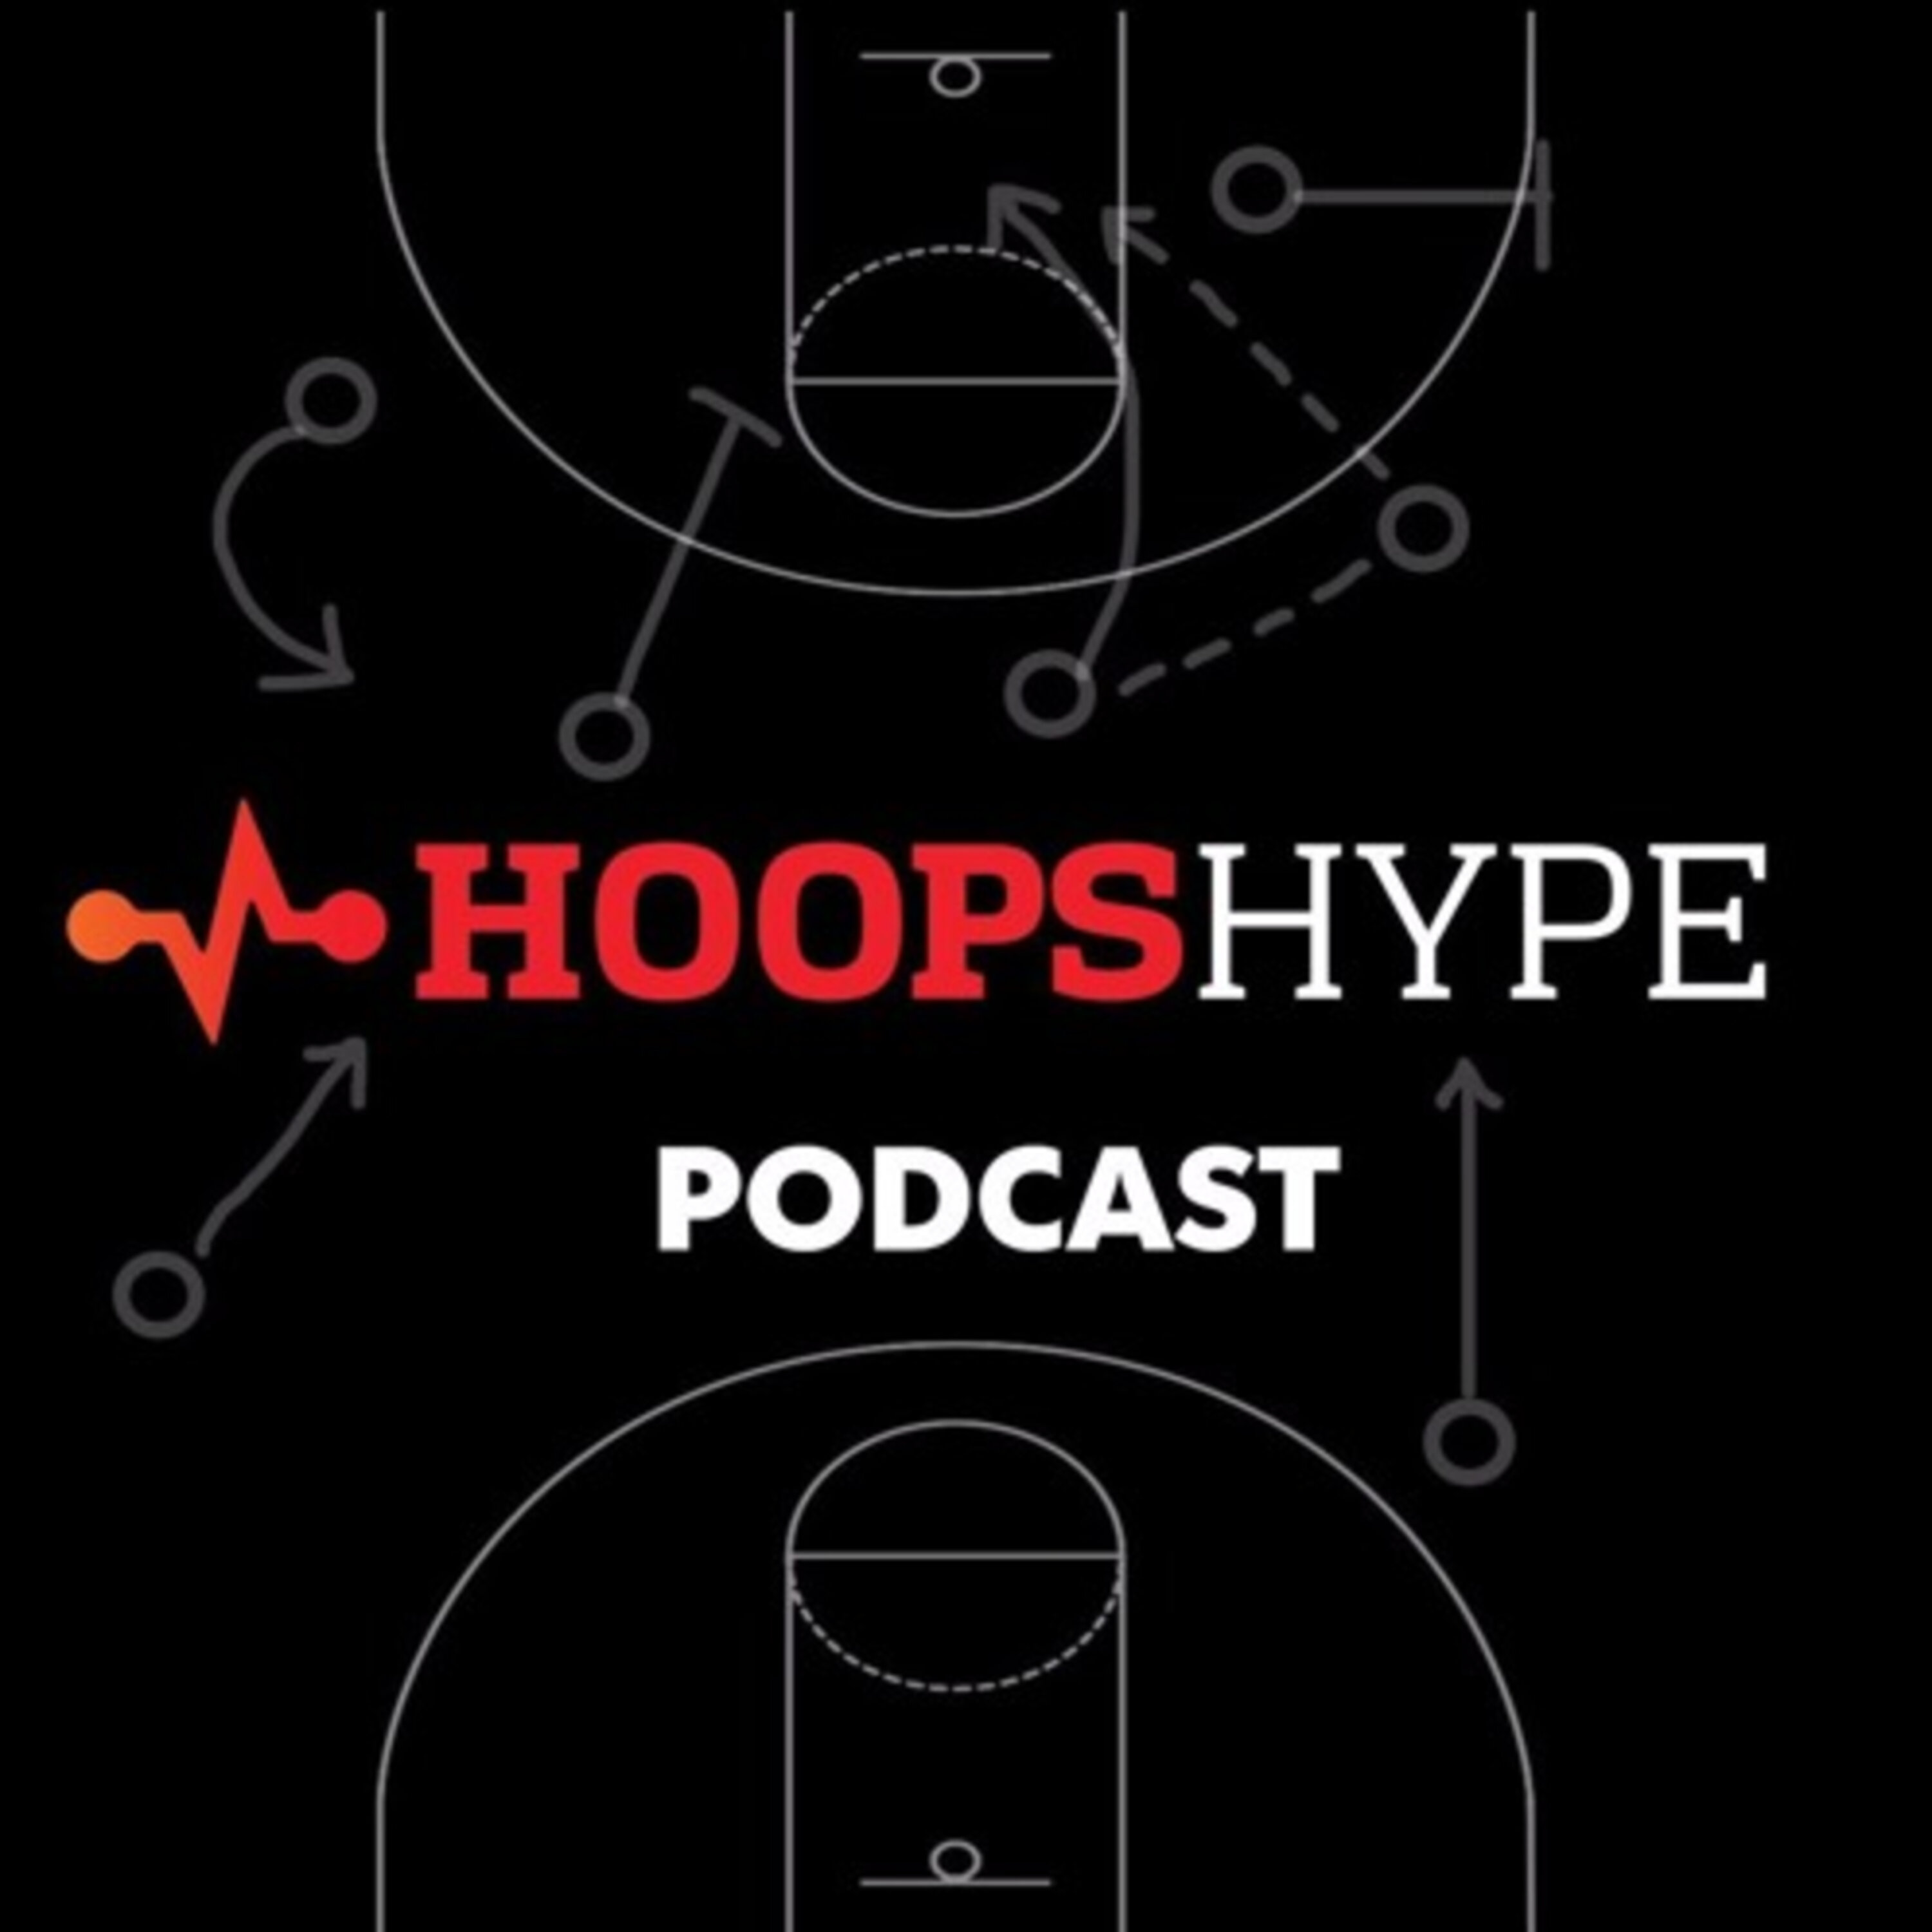 Larry Coon on NBA Free Agency, Future CBA Changes, Expansion and Sports Business Classroom